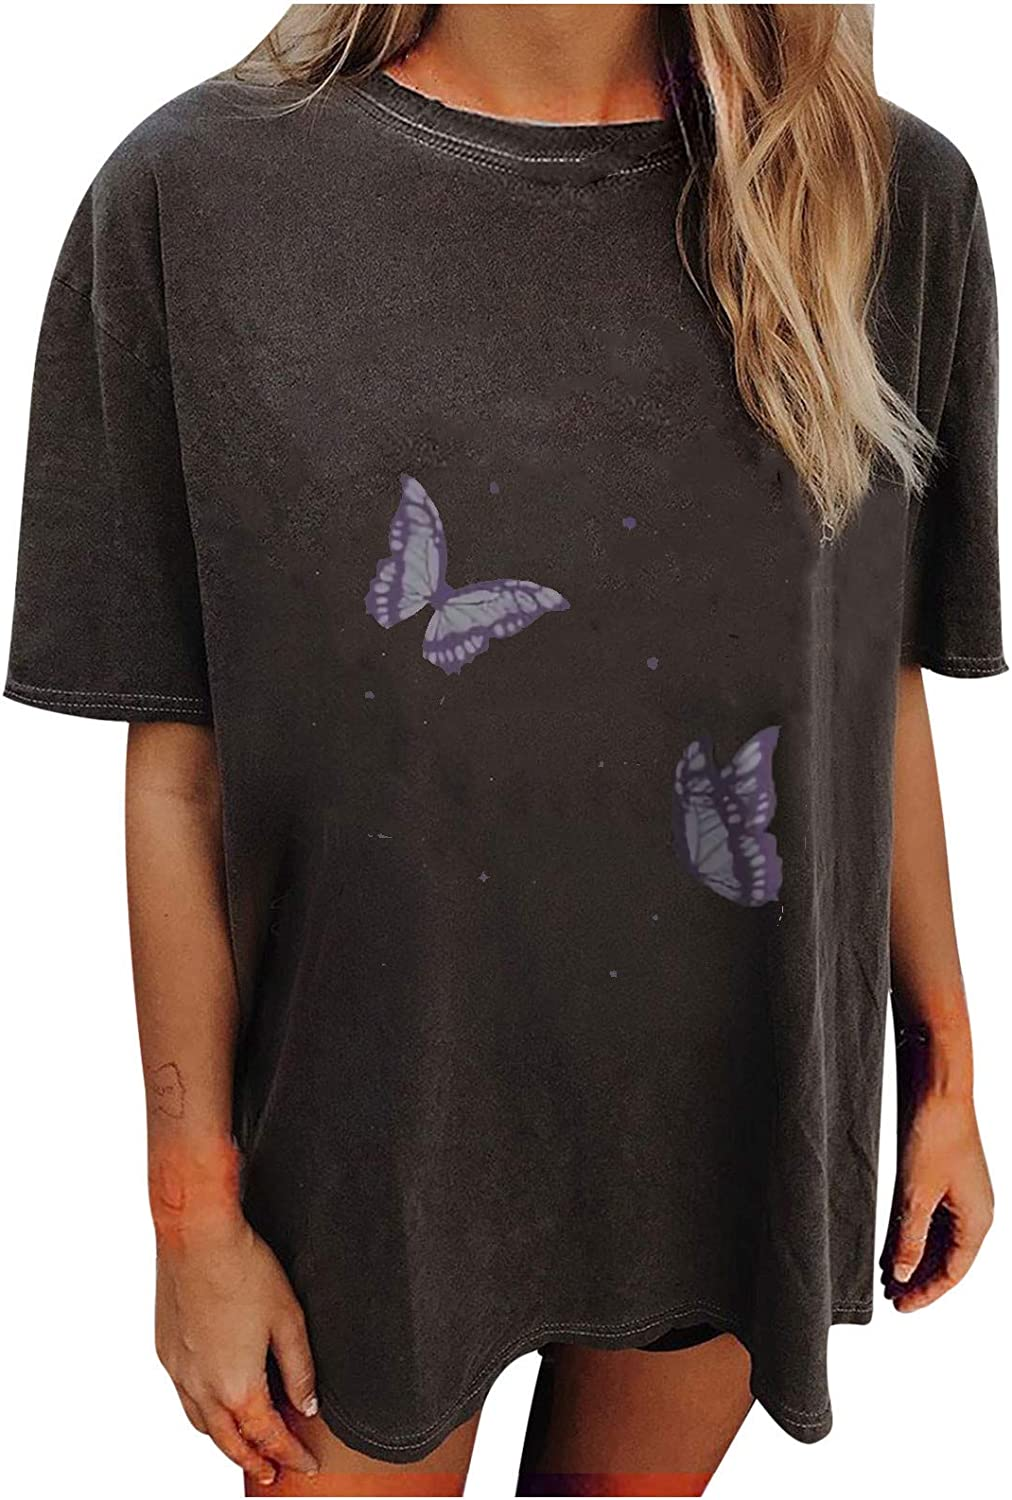 Forwelly Tunic Shirt for Women Cute Butterfly Print Short Sleeve O Neck T Shirt Summer Casual Baggy Top Blouse